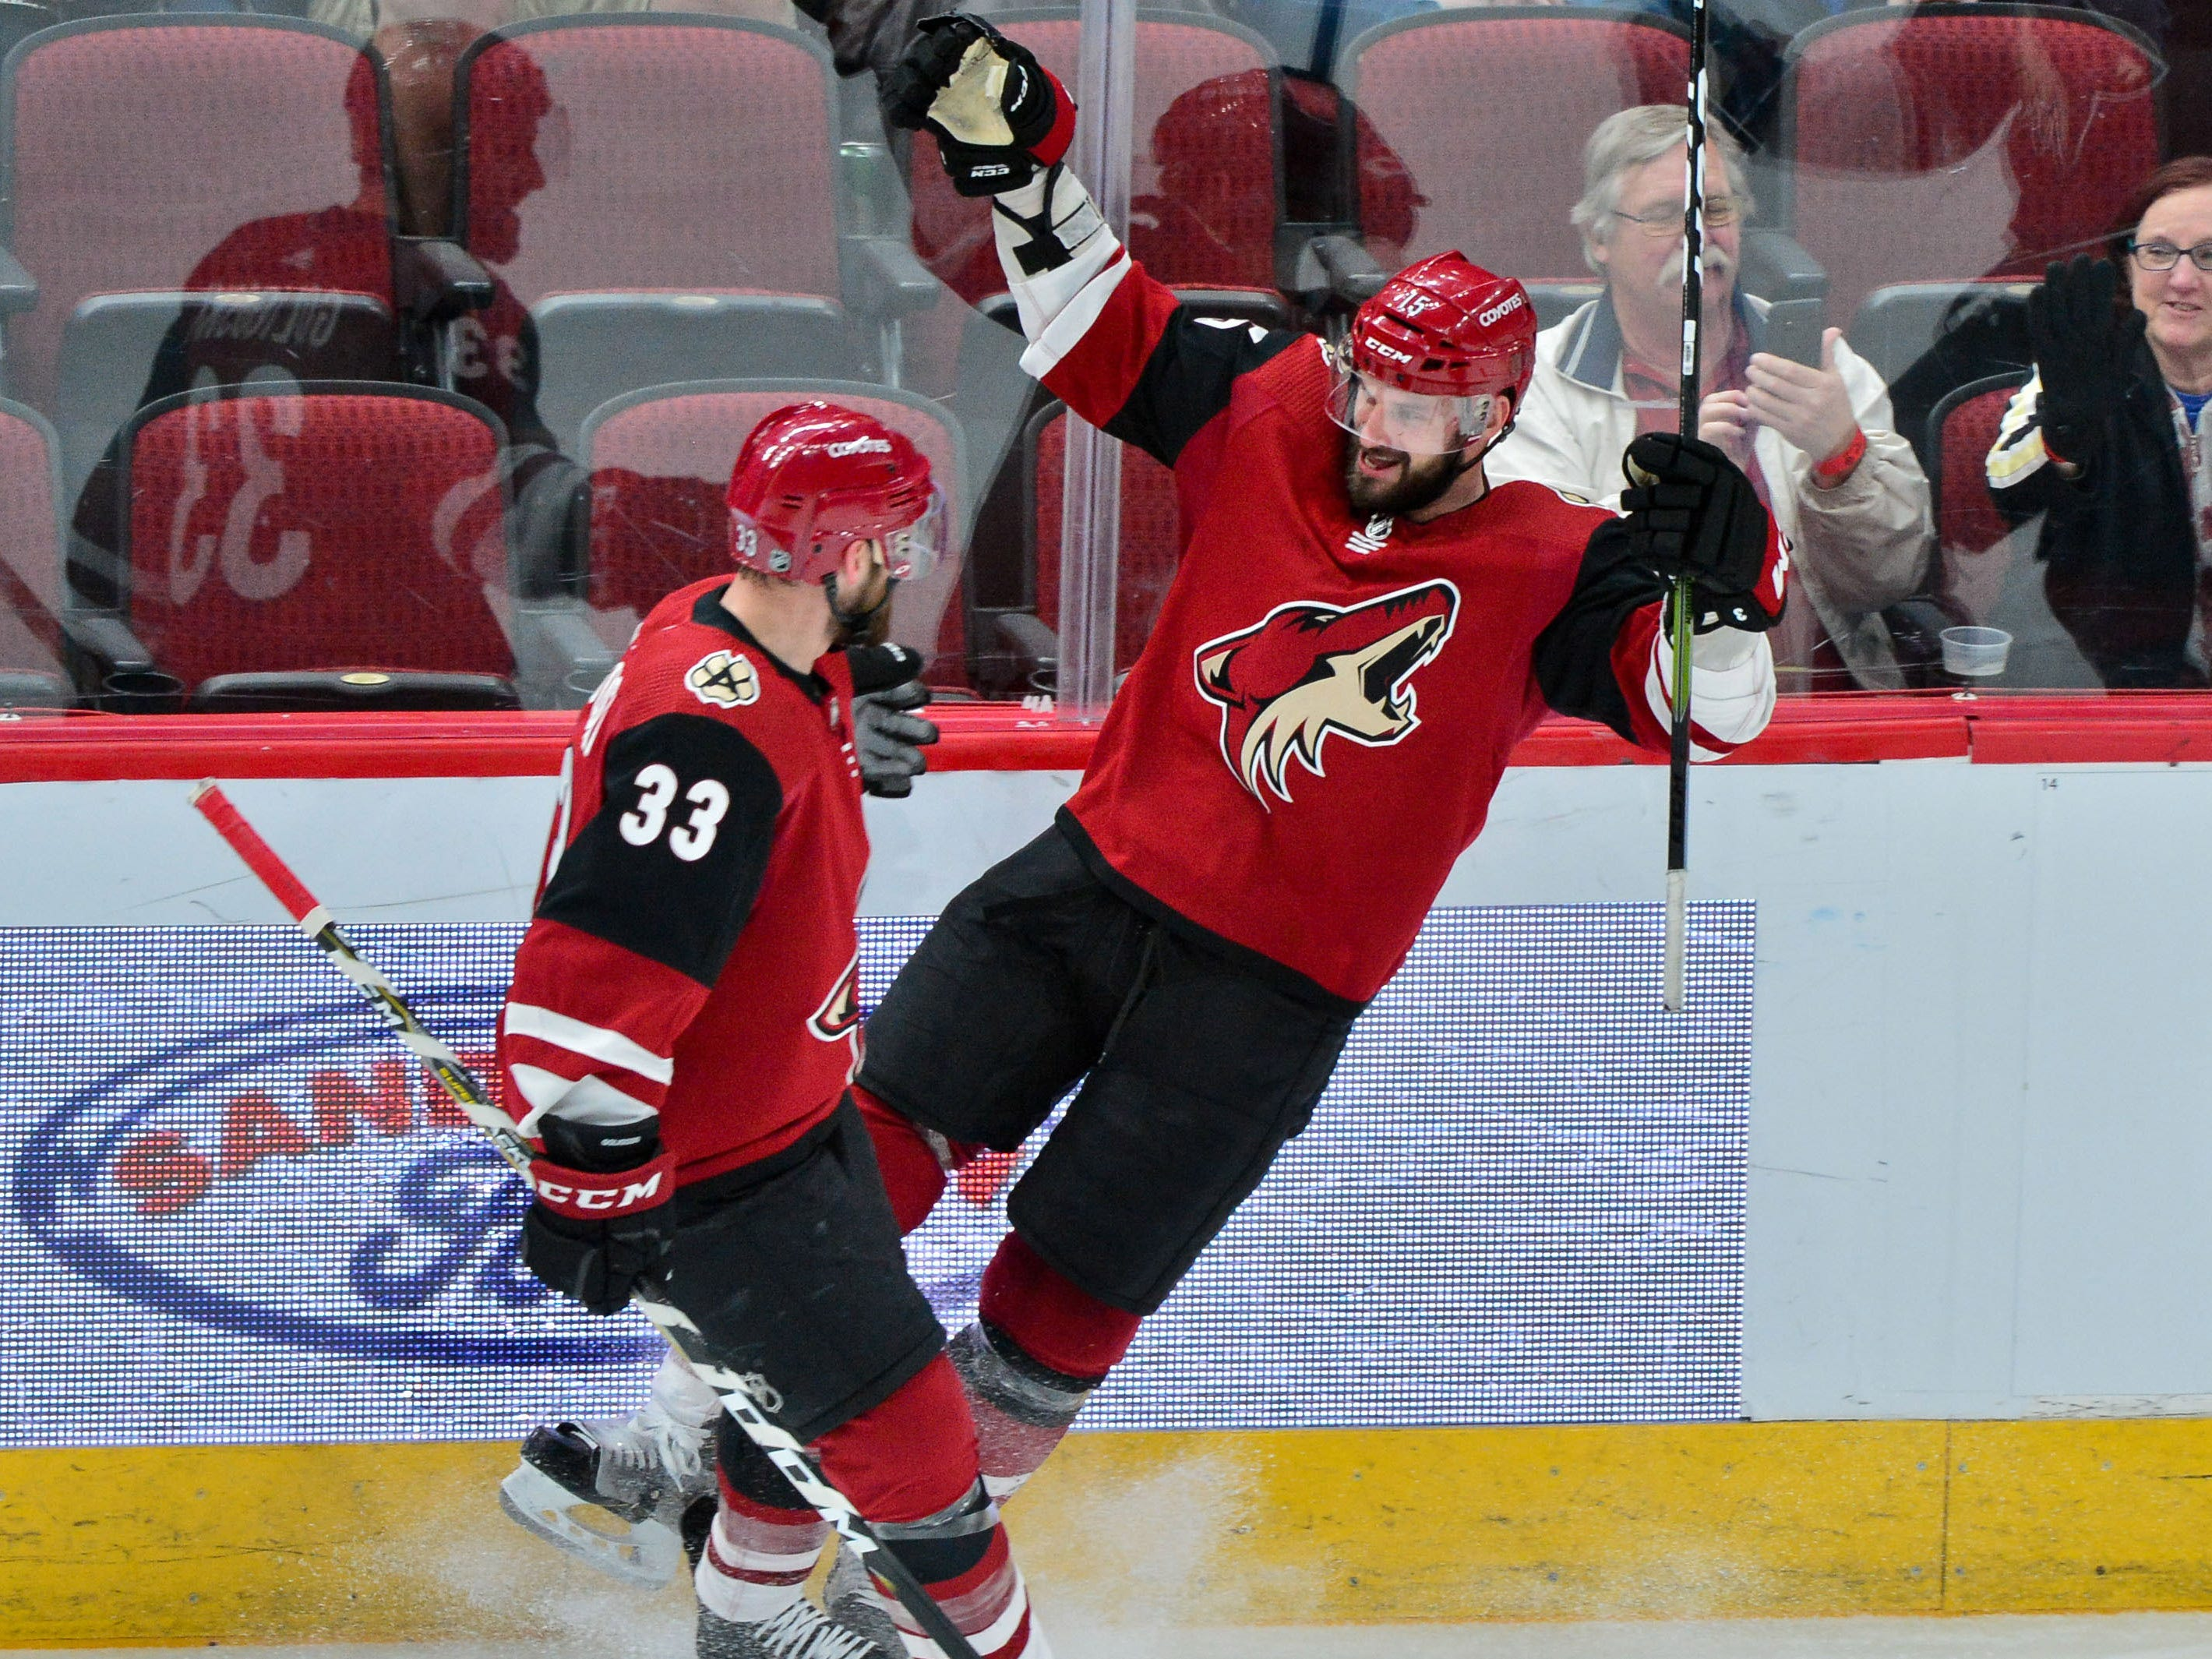 Feb 28, 2019; Glendale, AZ, USA; Arizona Coyotes center Brad Richardson (15) celebrates with defenseman Alex Goligoski (33) after scoring a goal in the first period against the Vancouver Canucks at Gila River Arena.